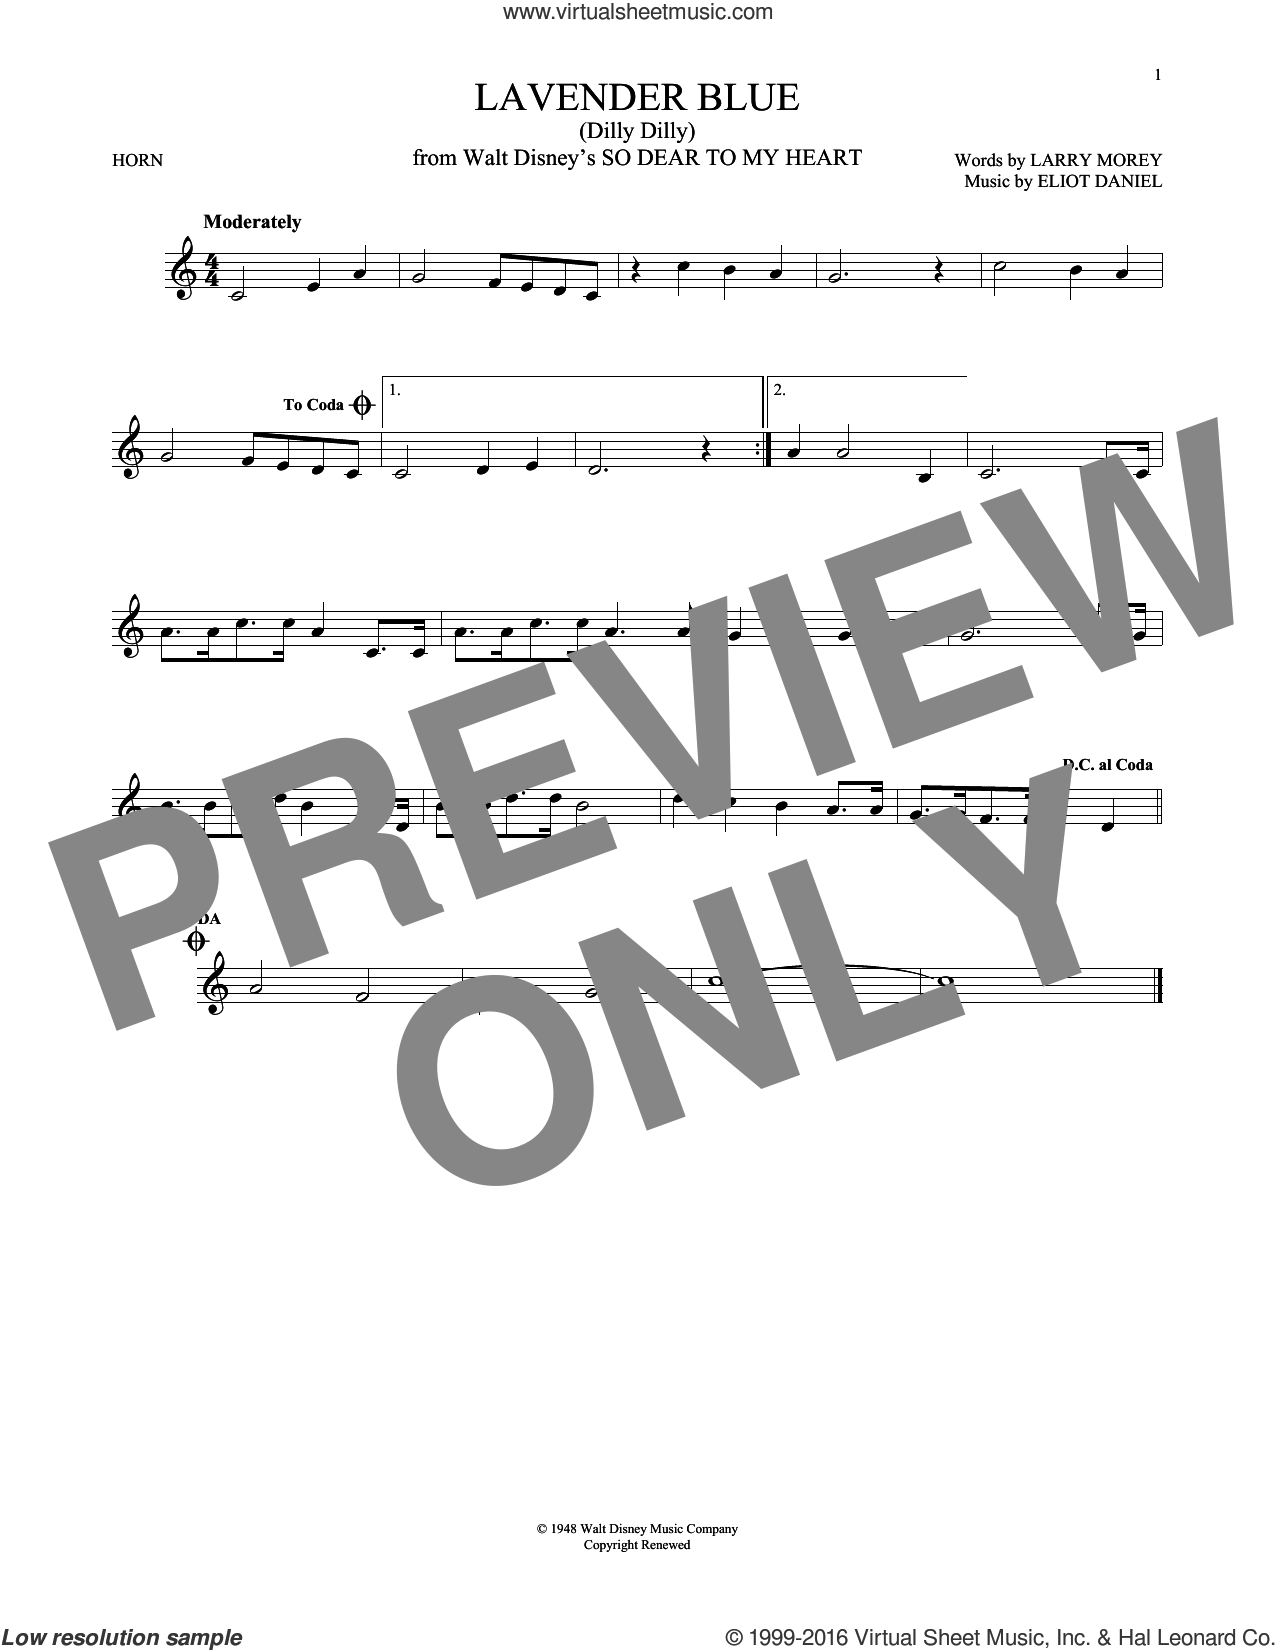 Lavender Blue (Dilly Dilly) sheet music for horn solo by Sammy Turner, Eliot Daniel and Larry Morey, intermediate skill level